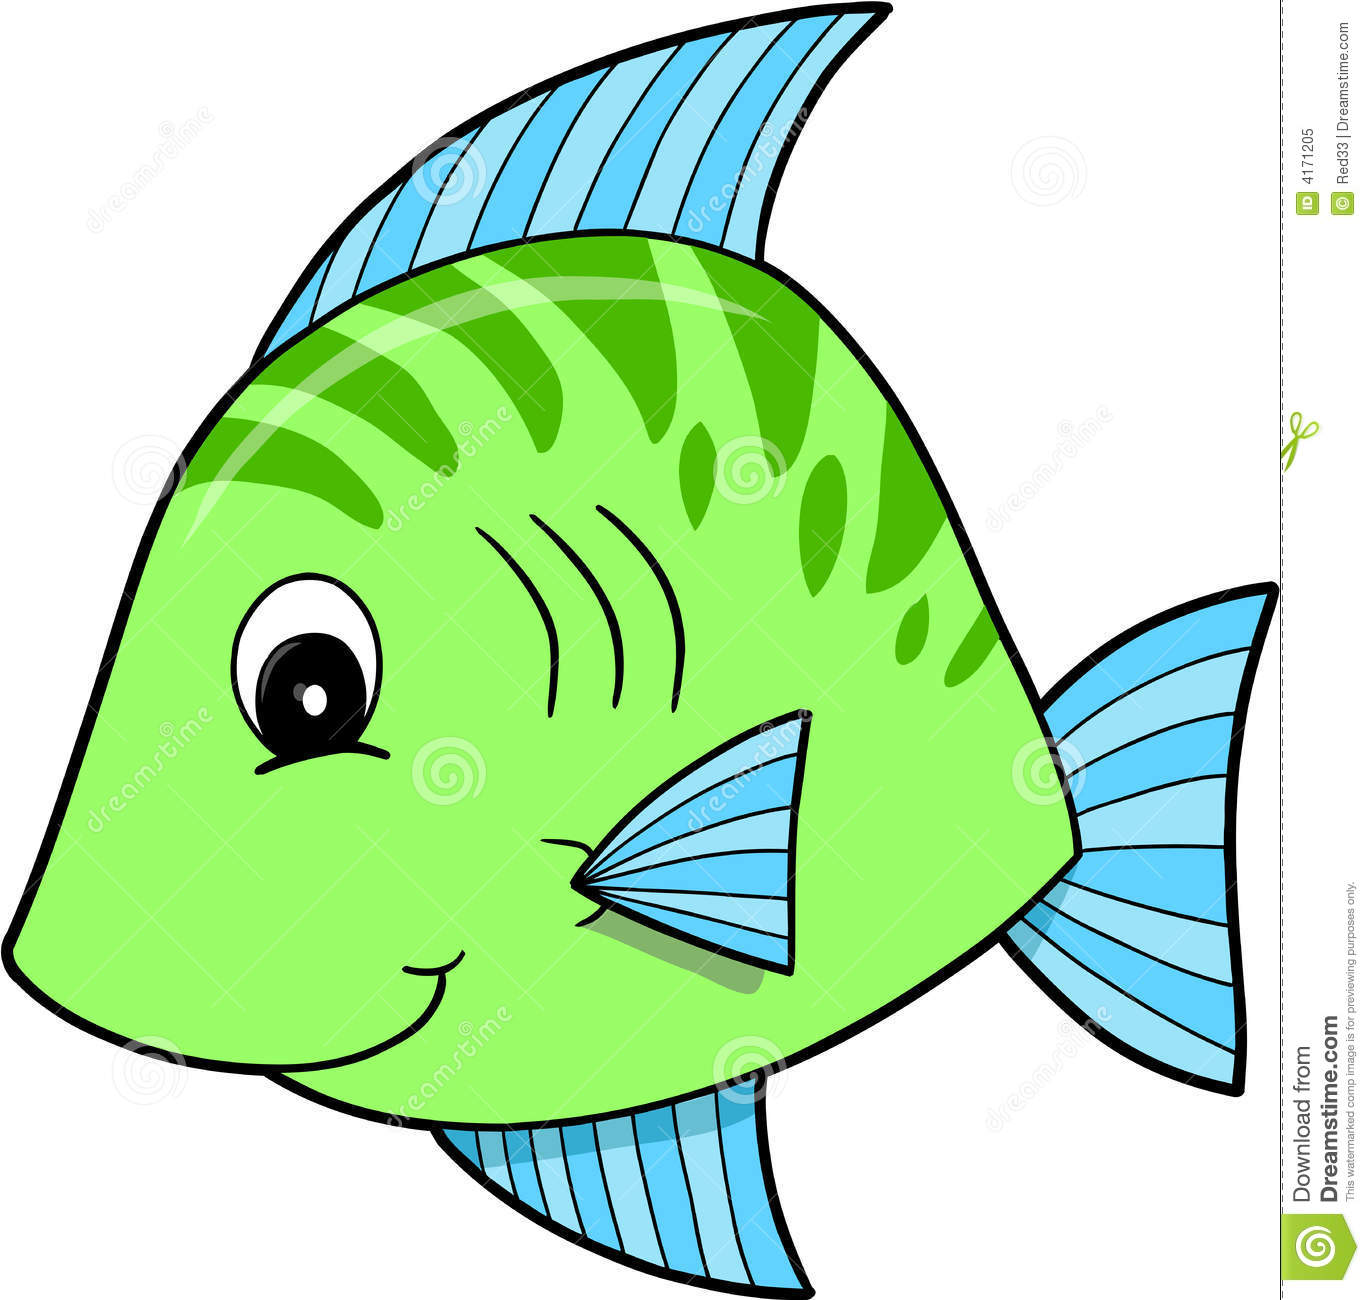 1370x1300 Clip Art Of Fish Bowl Images On Page 0 Yanhe Clip Art